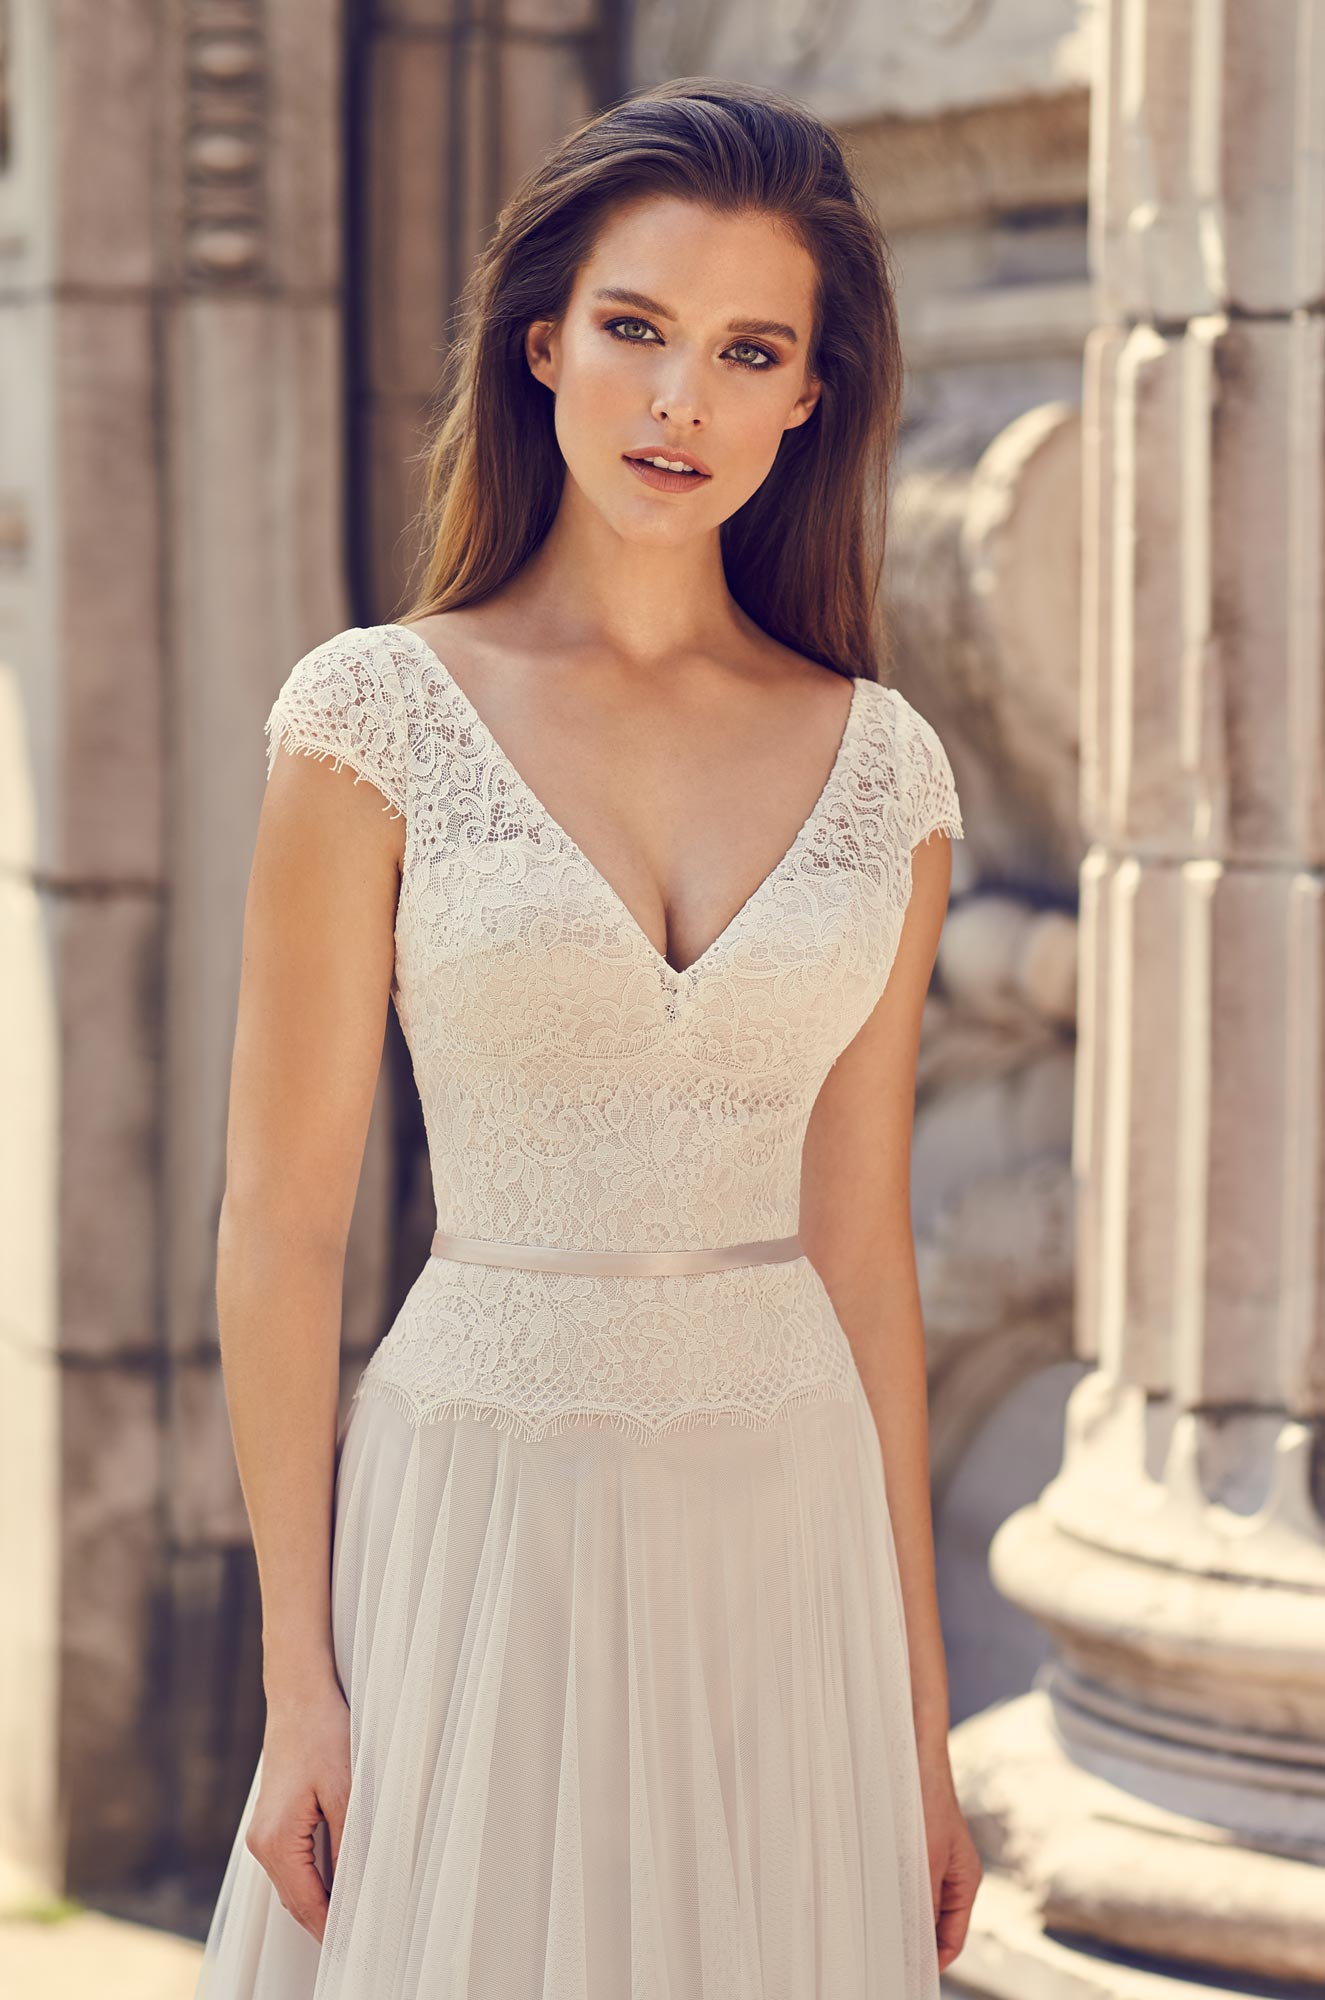 Elegant Cap Sleeve Wedding Dress - Style #2229 | Mikaella Bridal